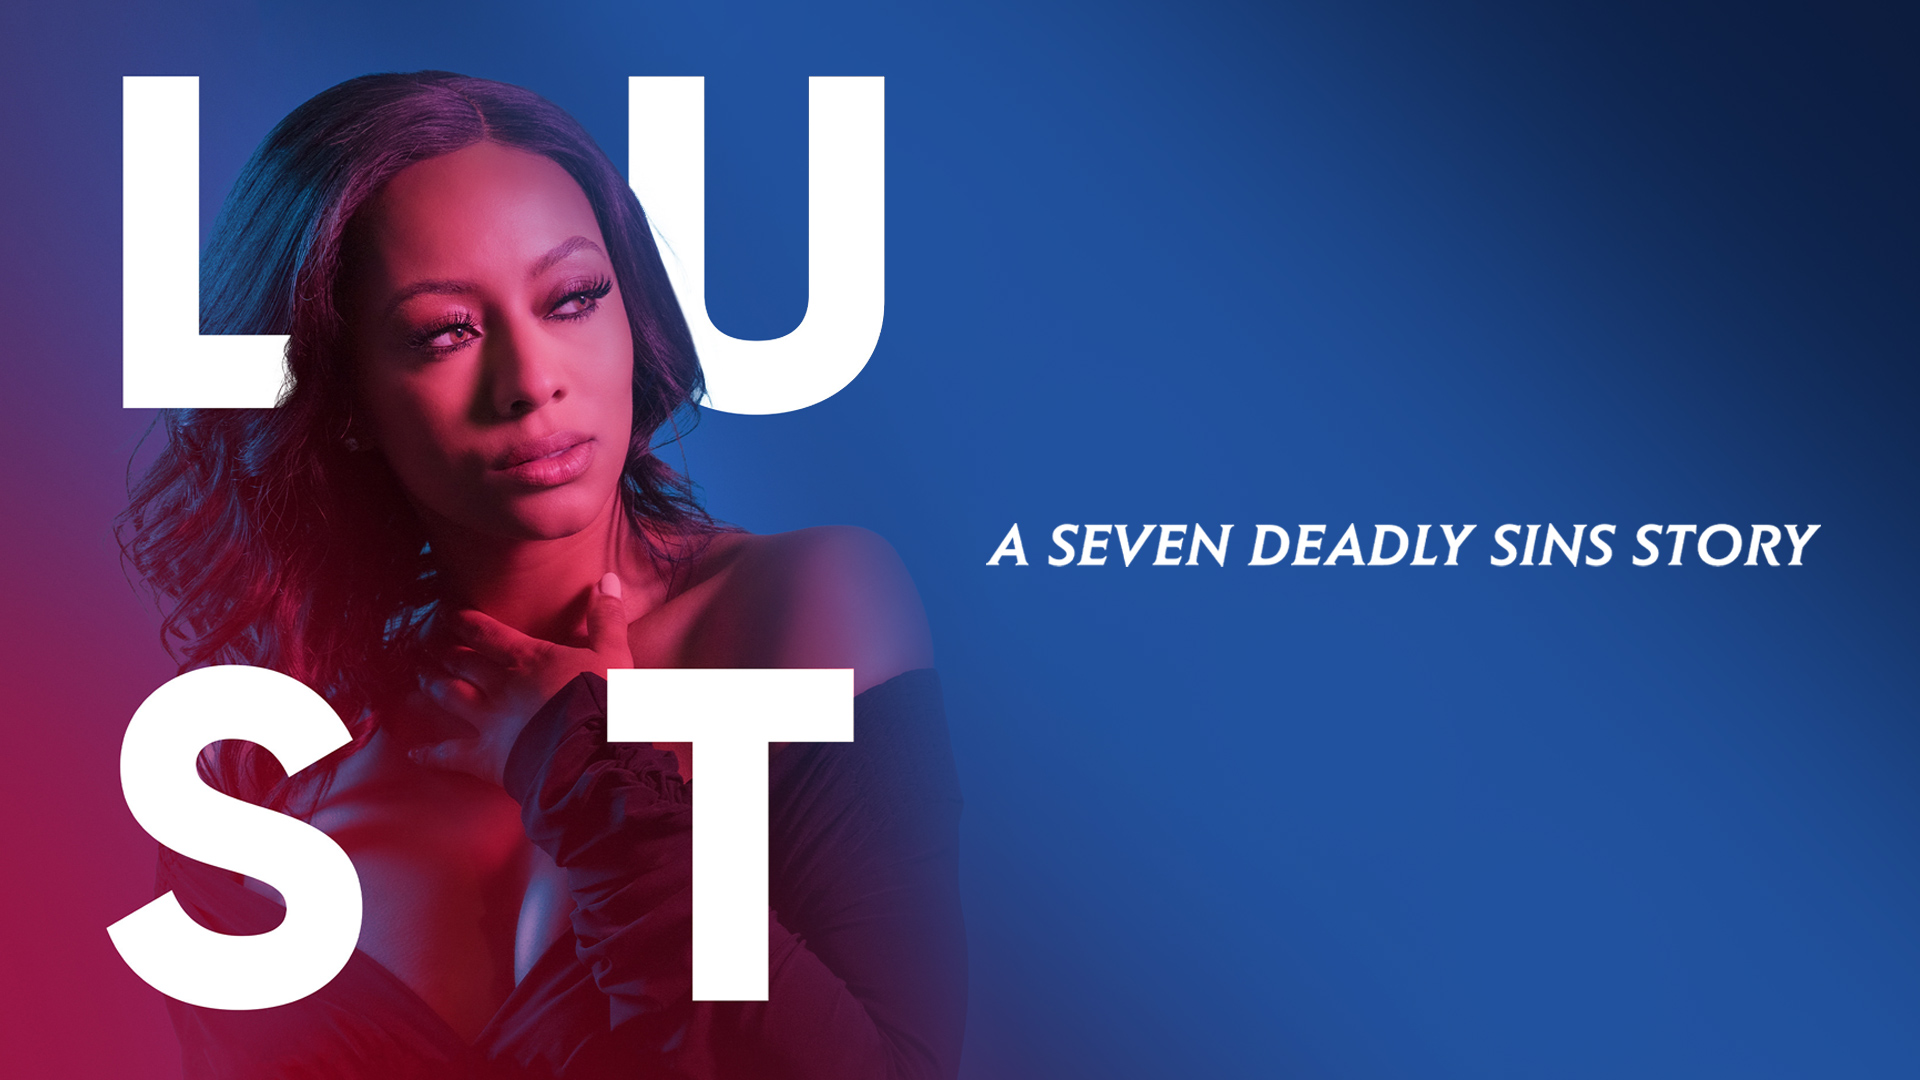 Lust: A Seven Deadly Sins Story